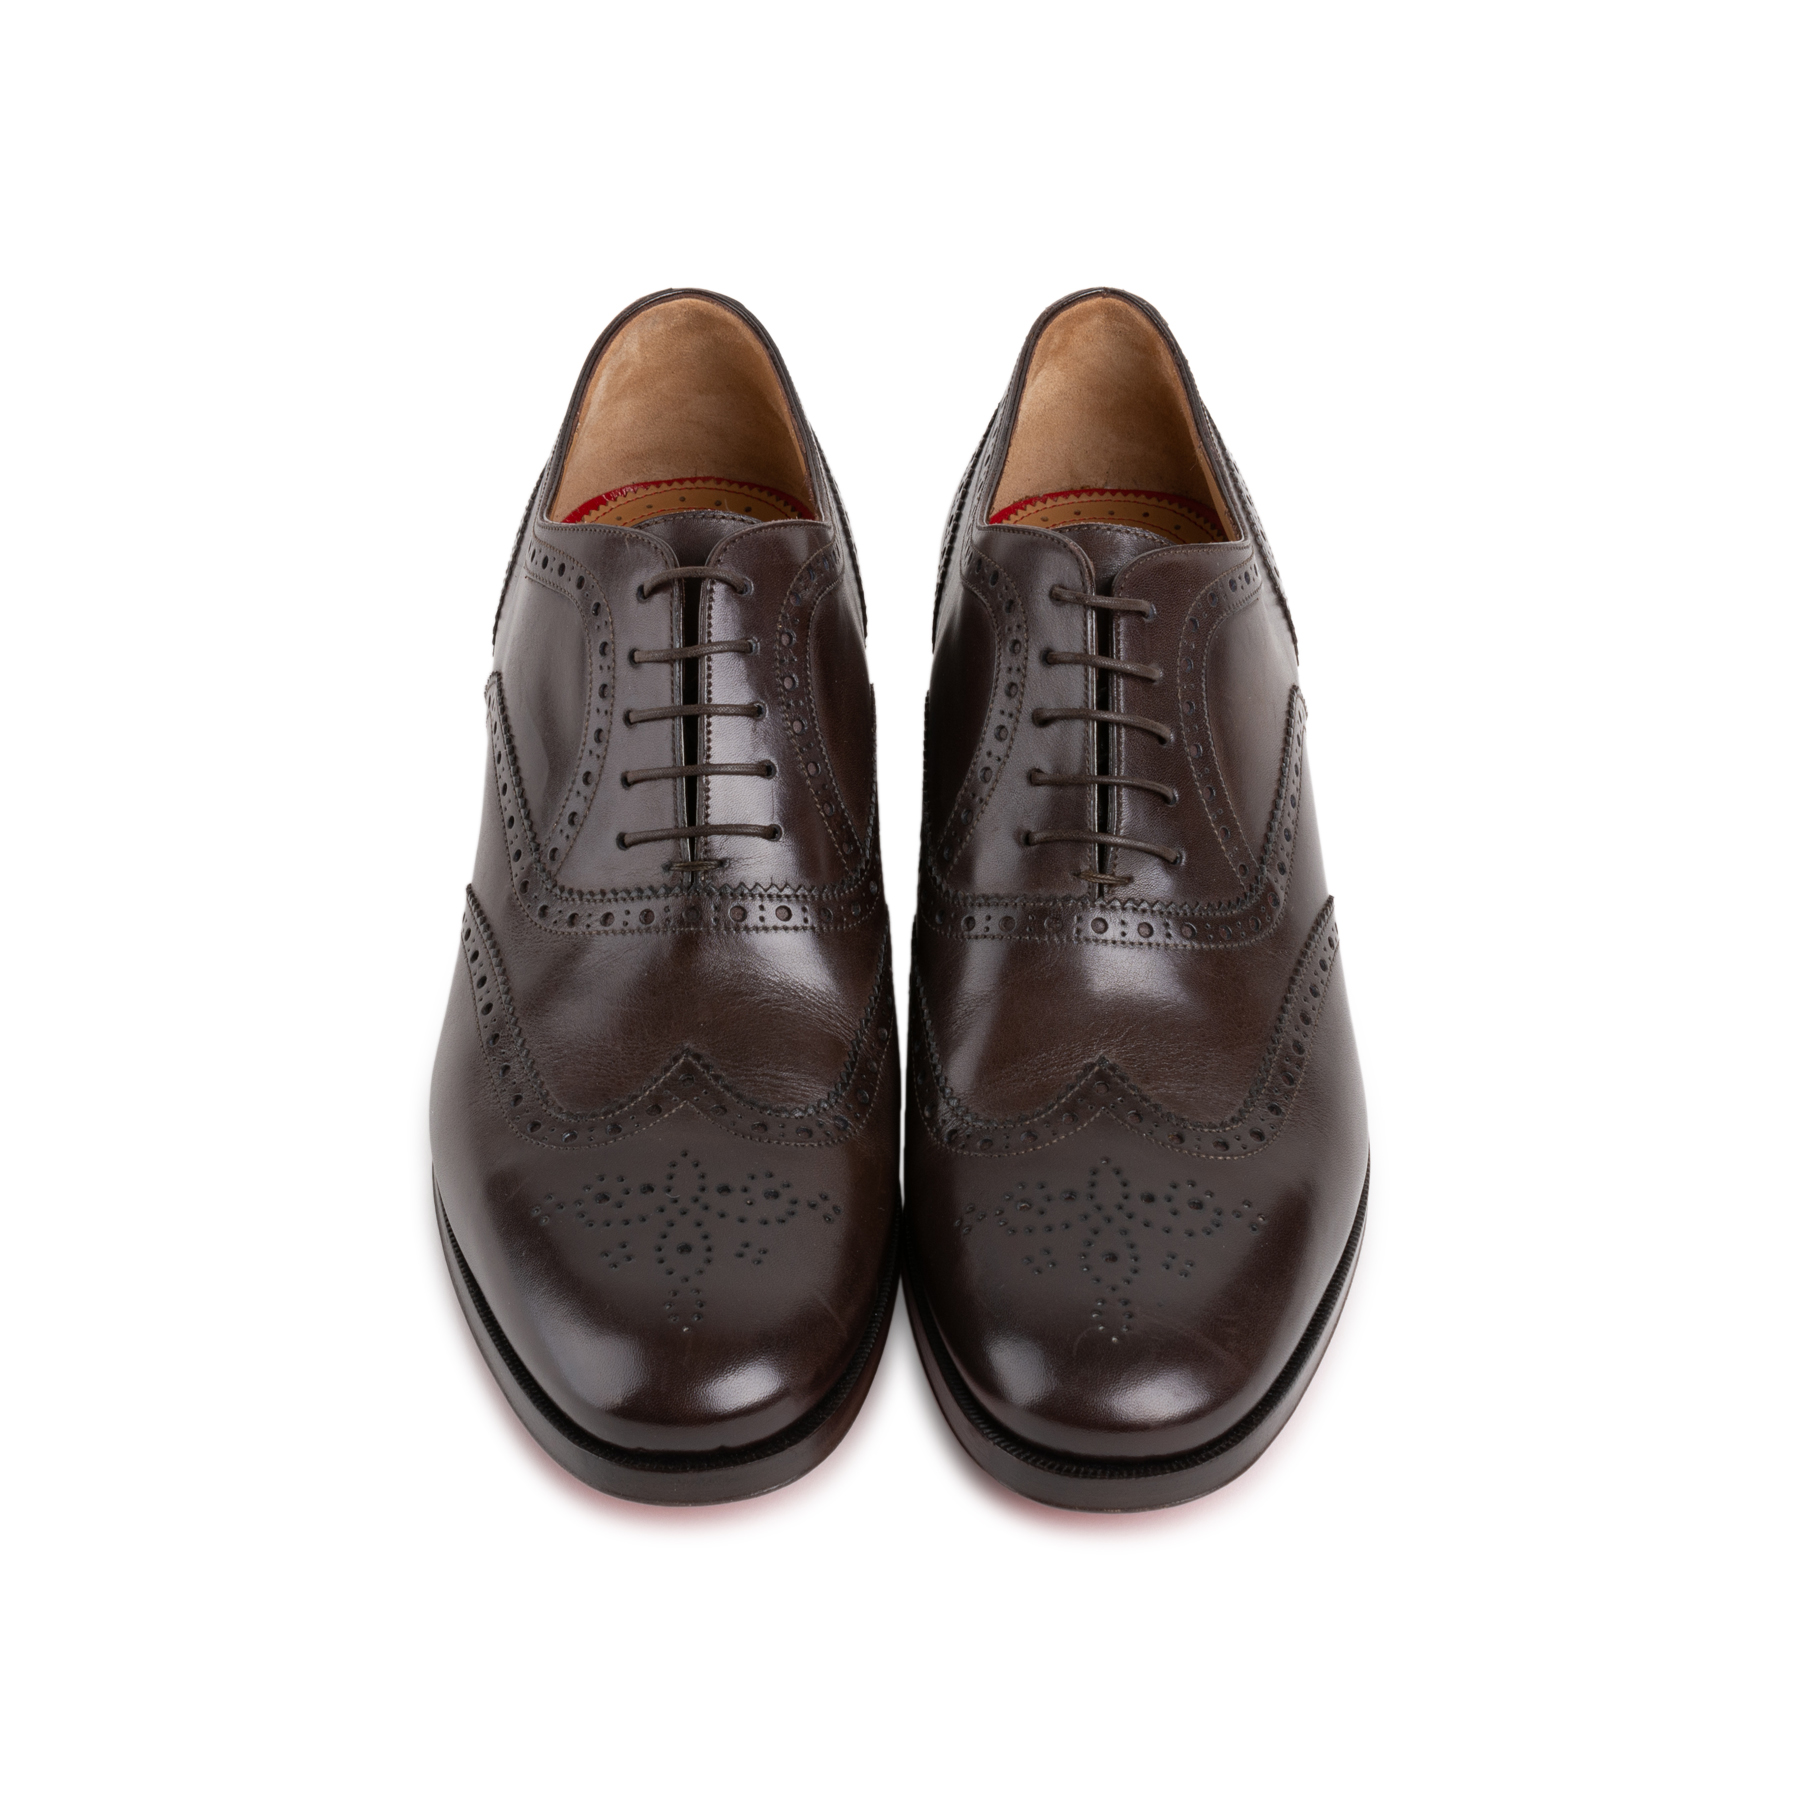 detailed look 71bb0 b030e Education Oxford Shoes